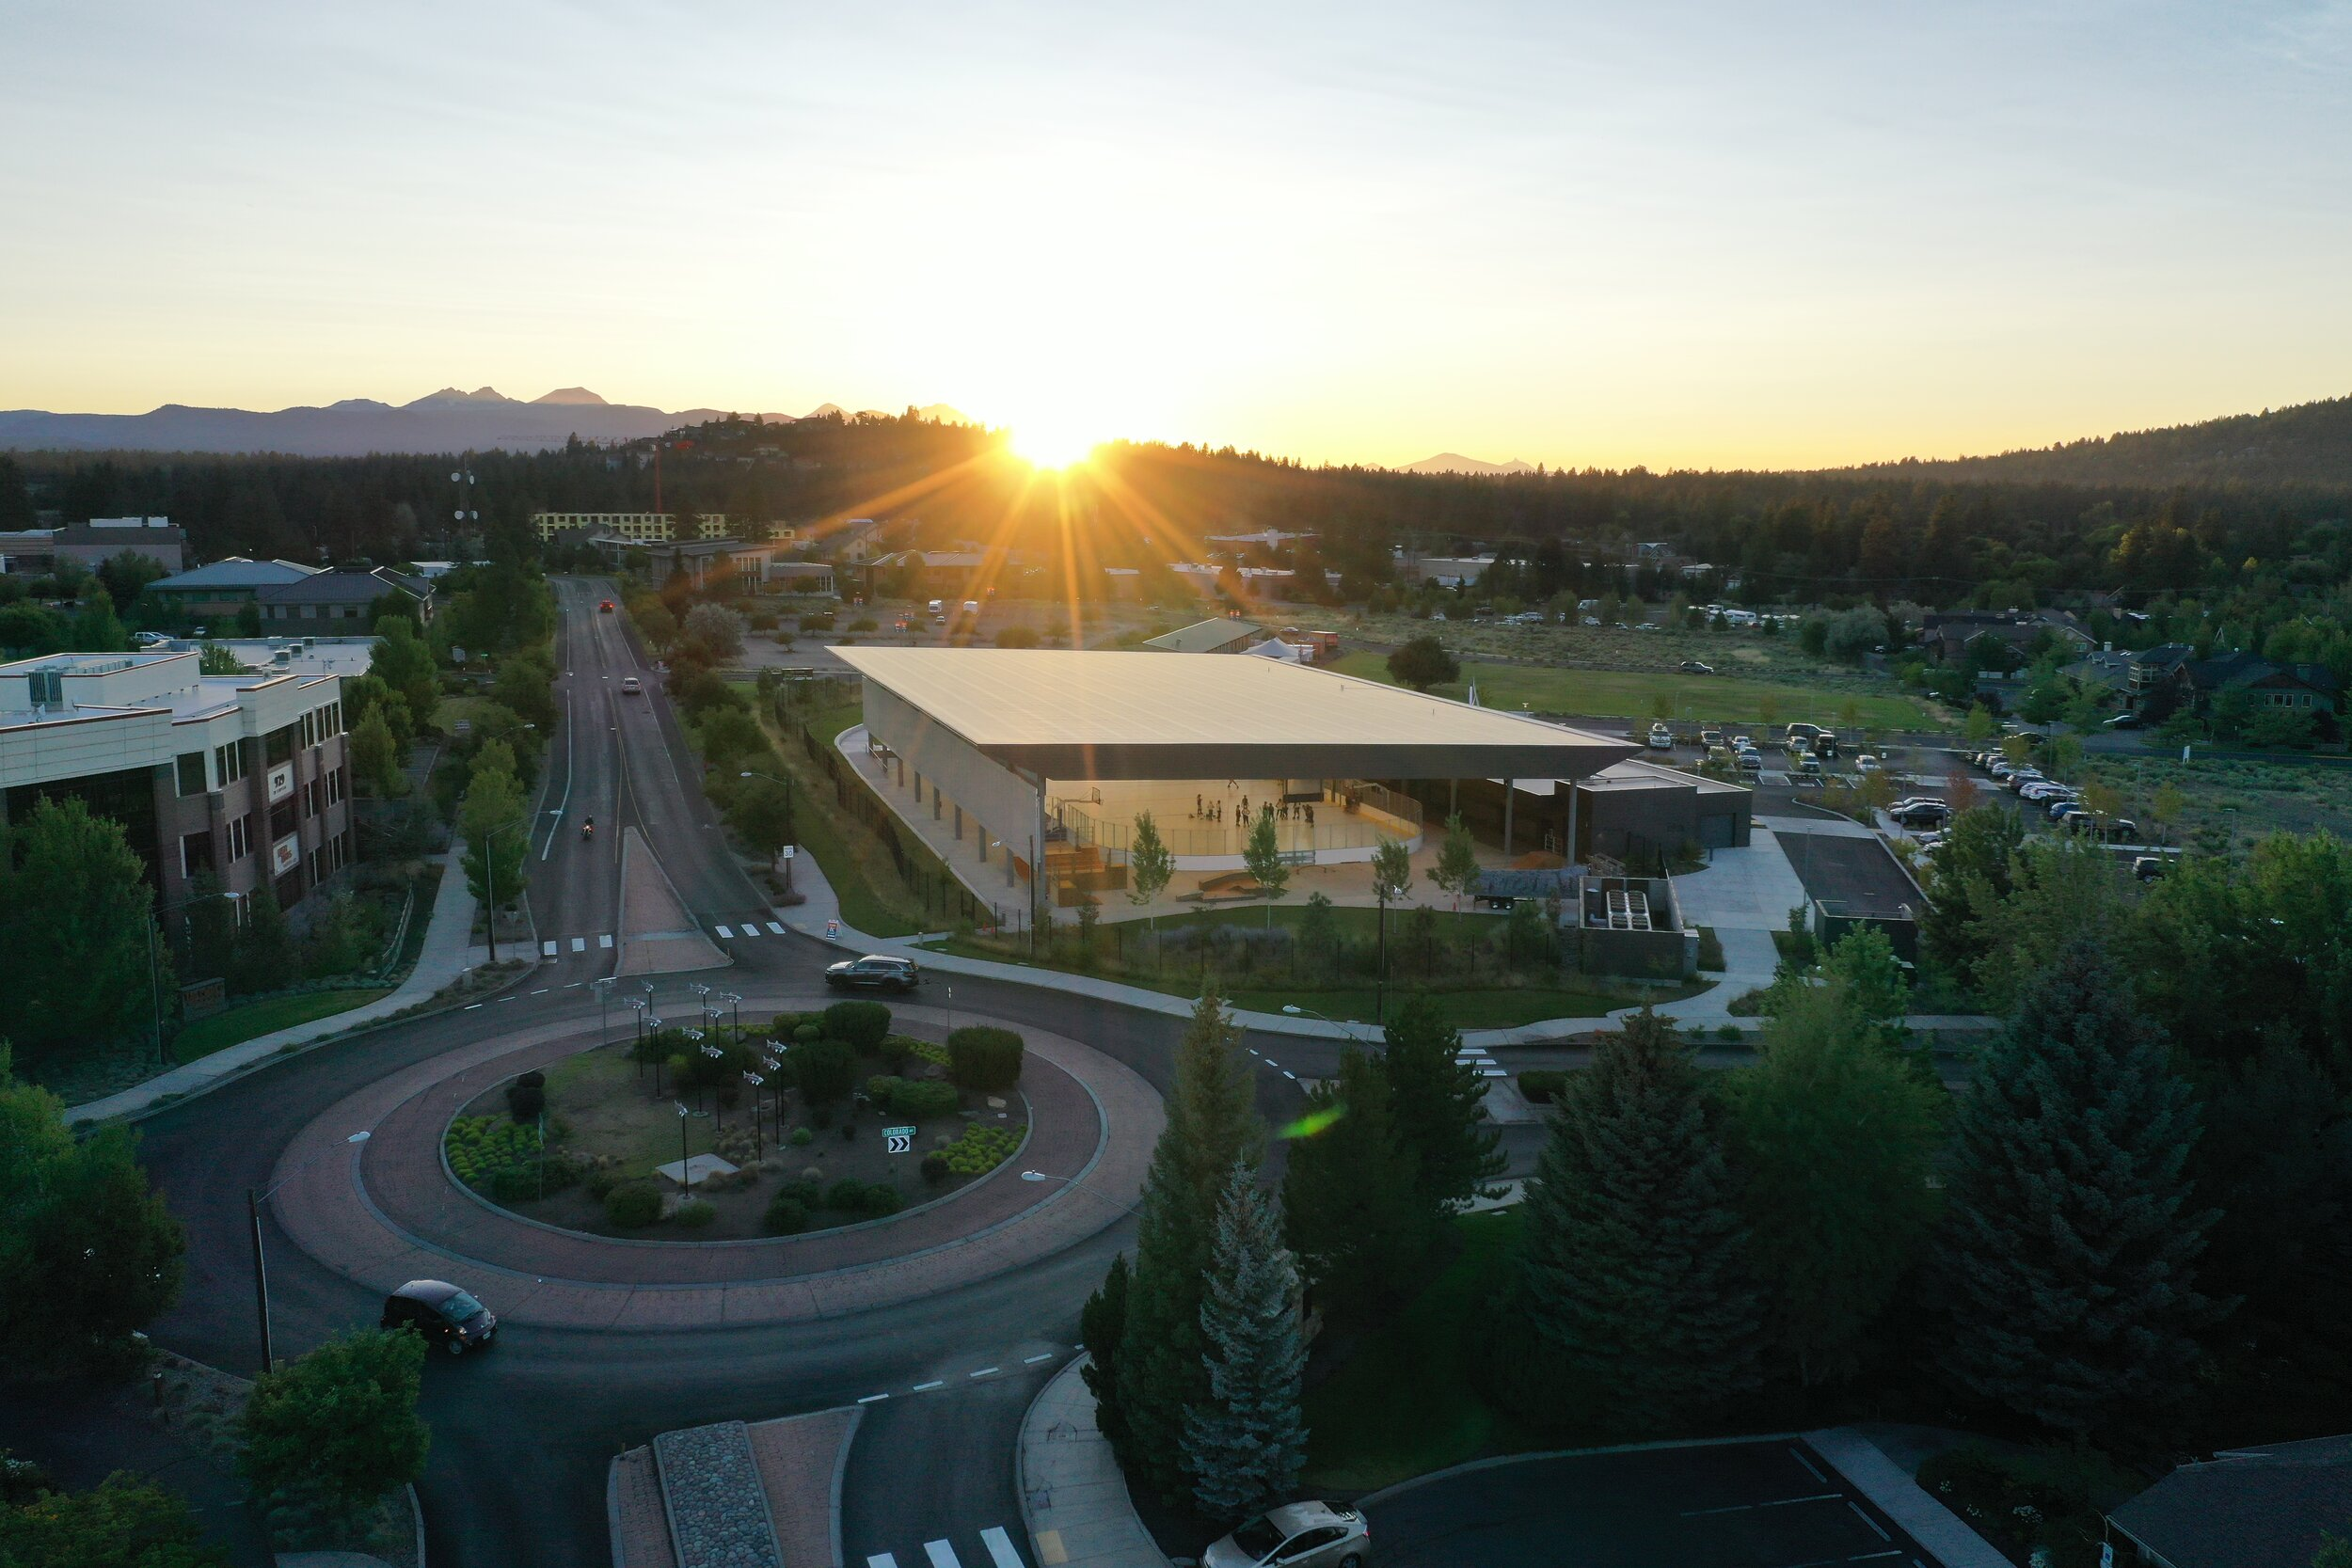 drone photo of Simpson pavillion during sunset, roundabout and cascade mountains in view